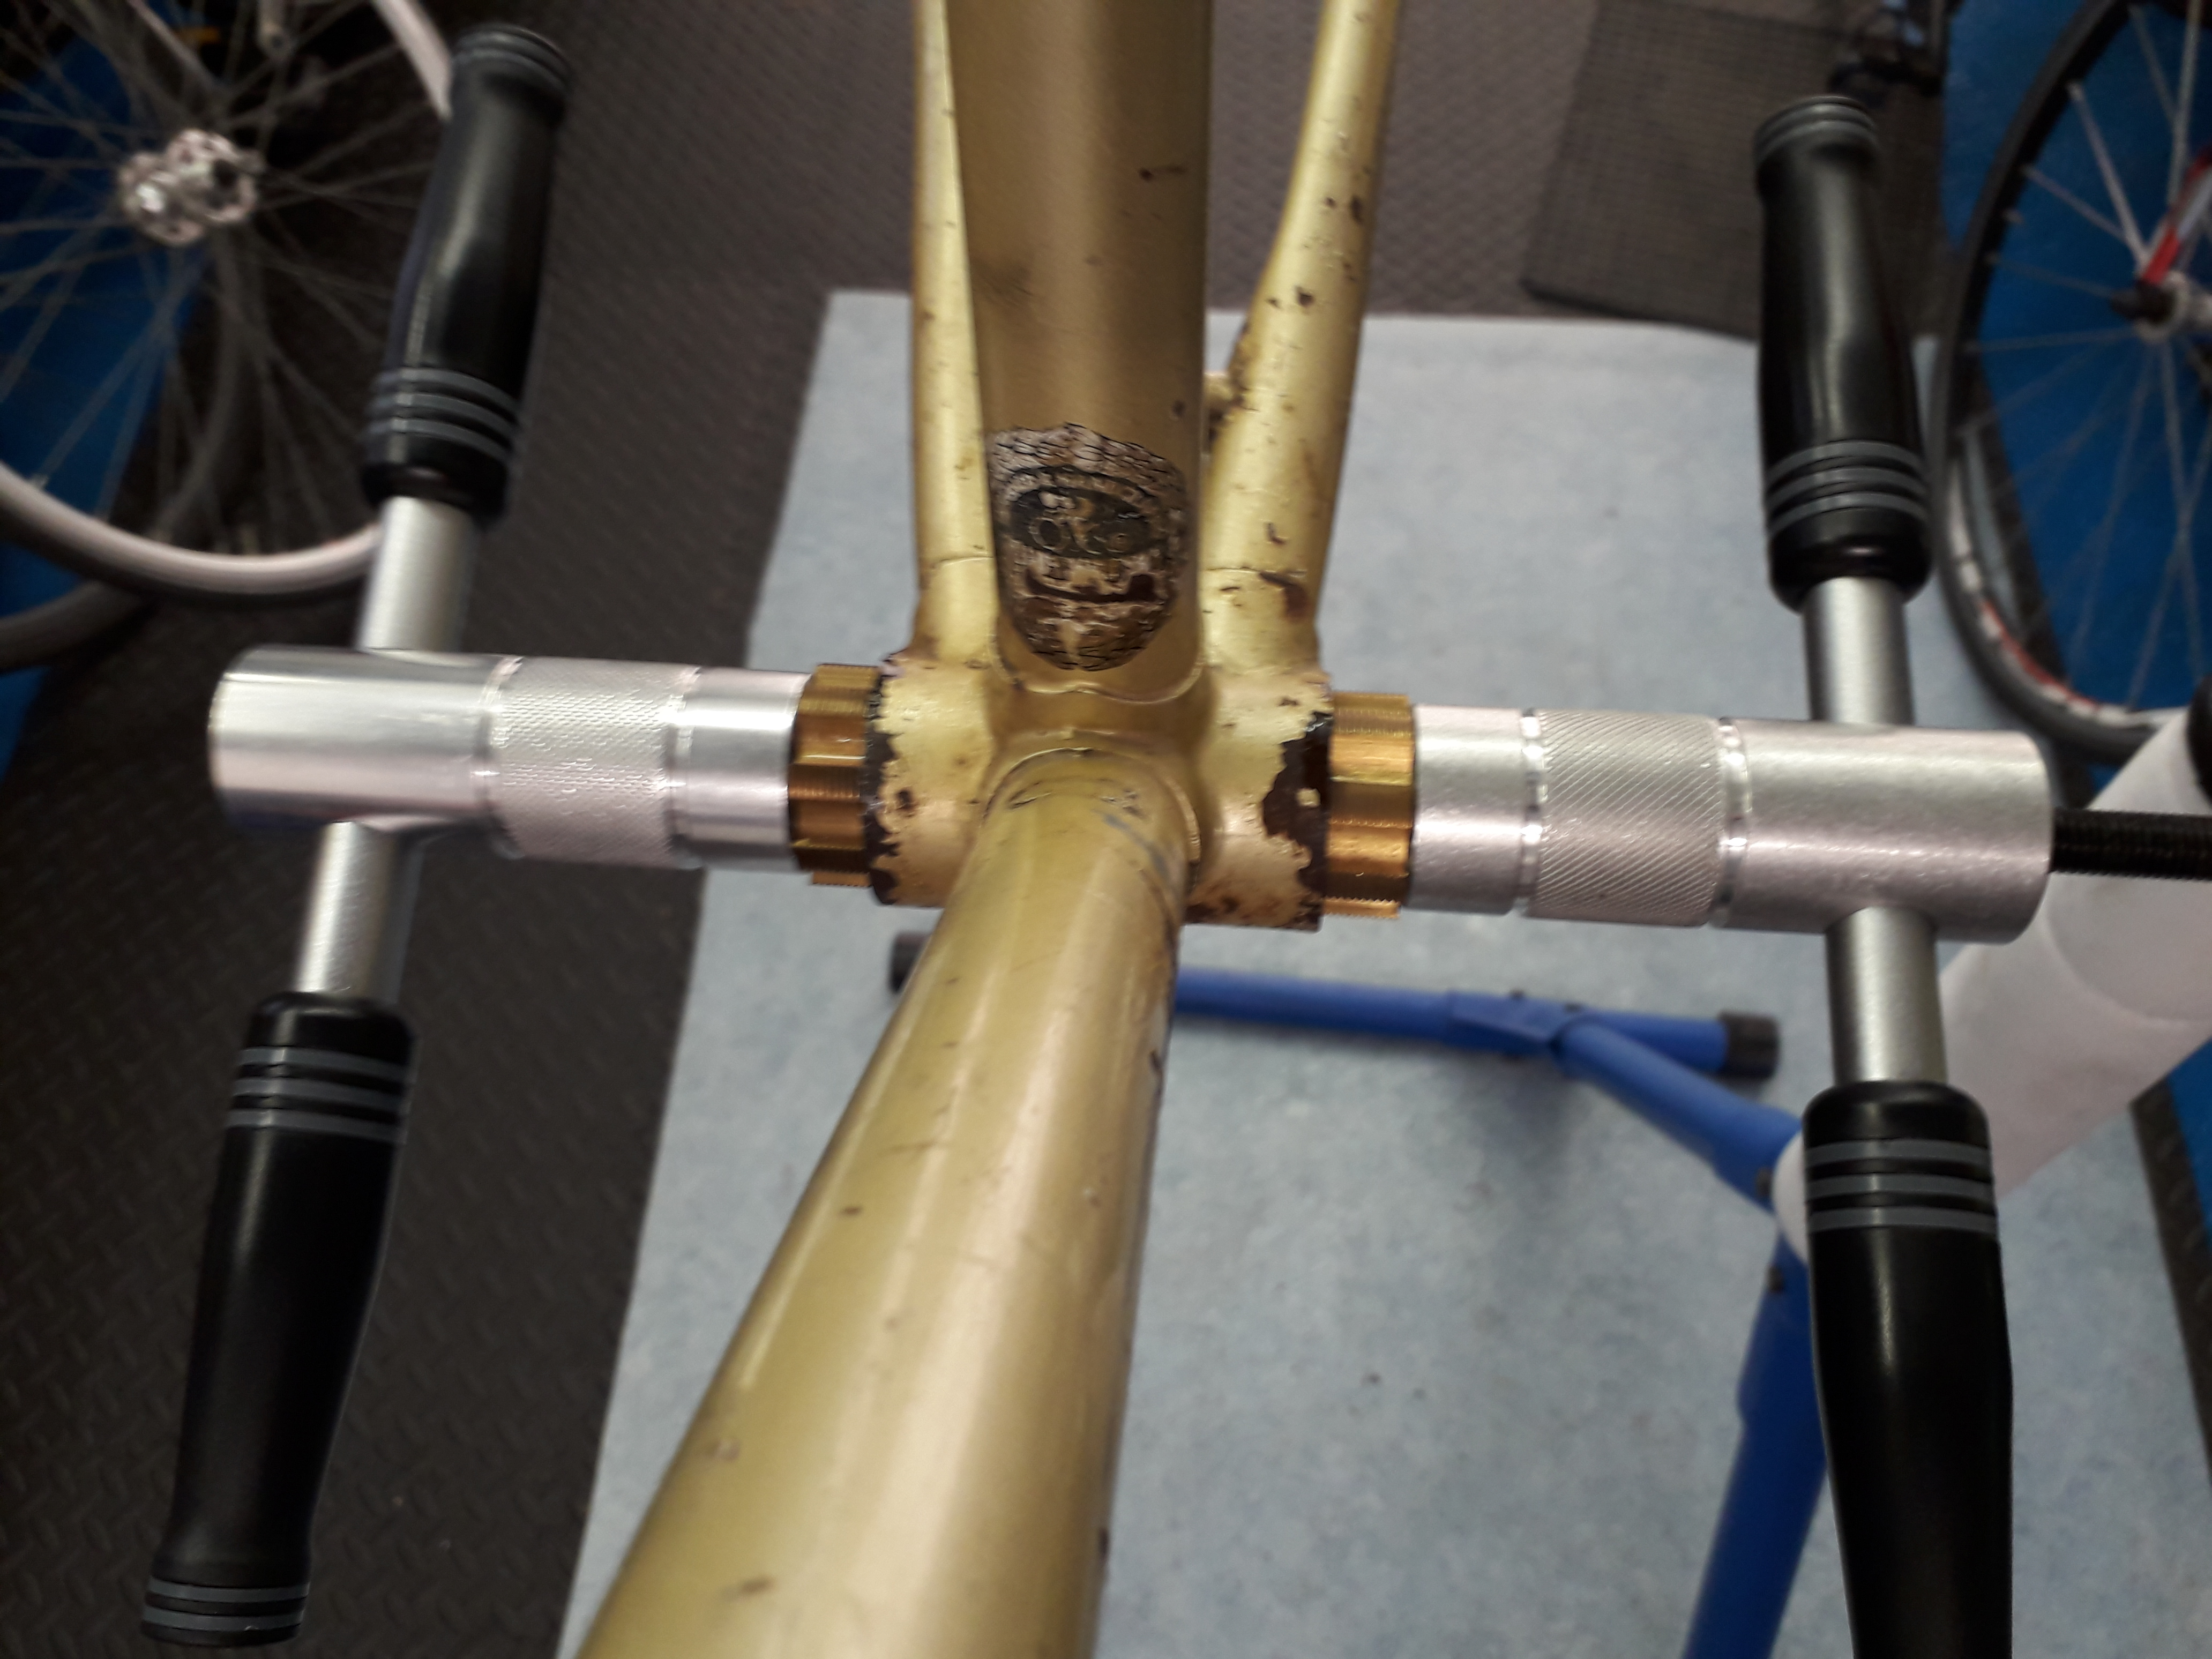 Bottom bracket facing & tapping tool in action